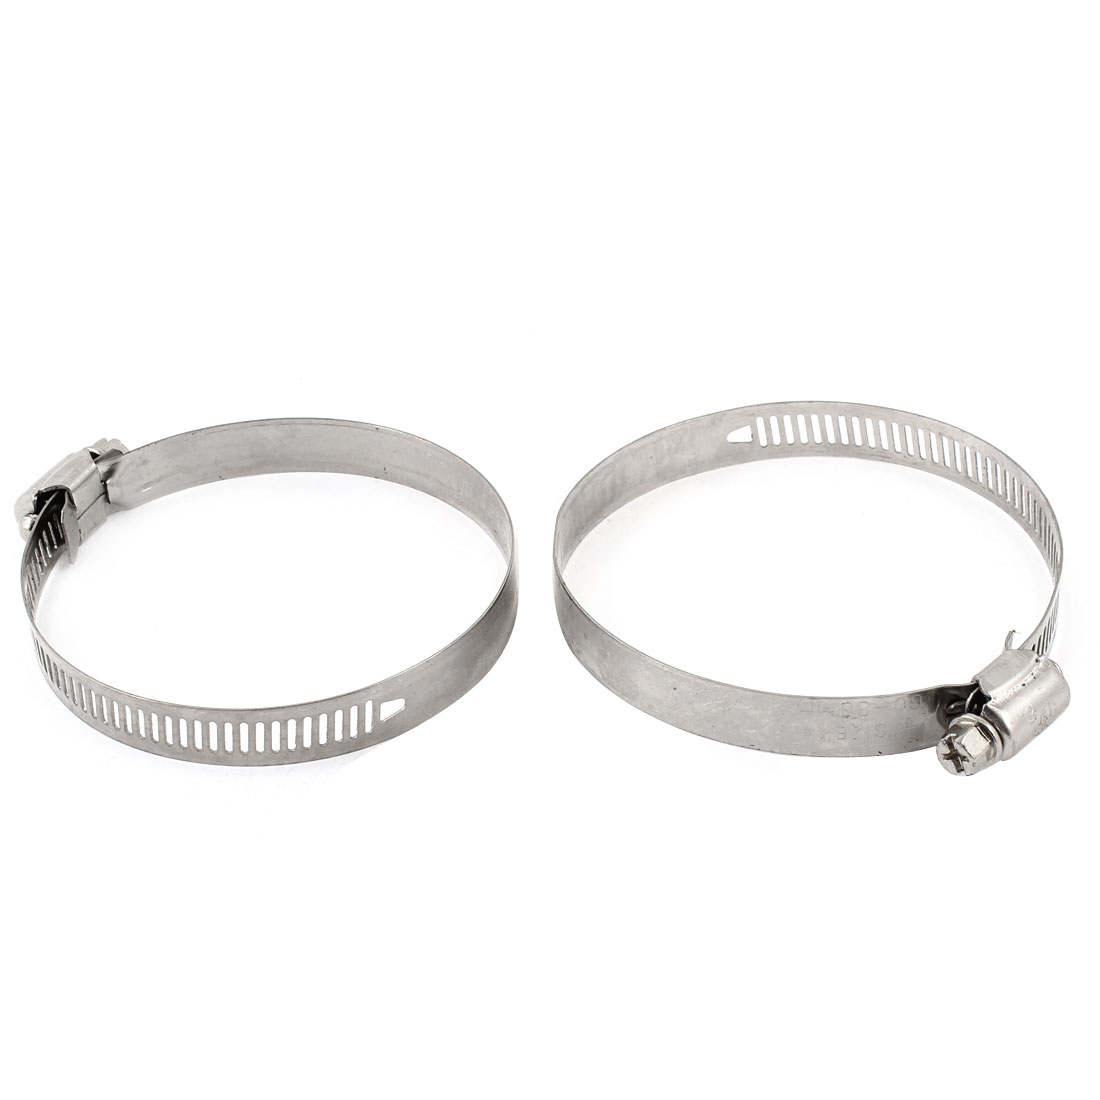 2pcs 12mm Width Stainless Steel Ring Worm Drive Hose Clamp Hoop 60-83mm